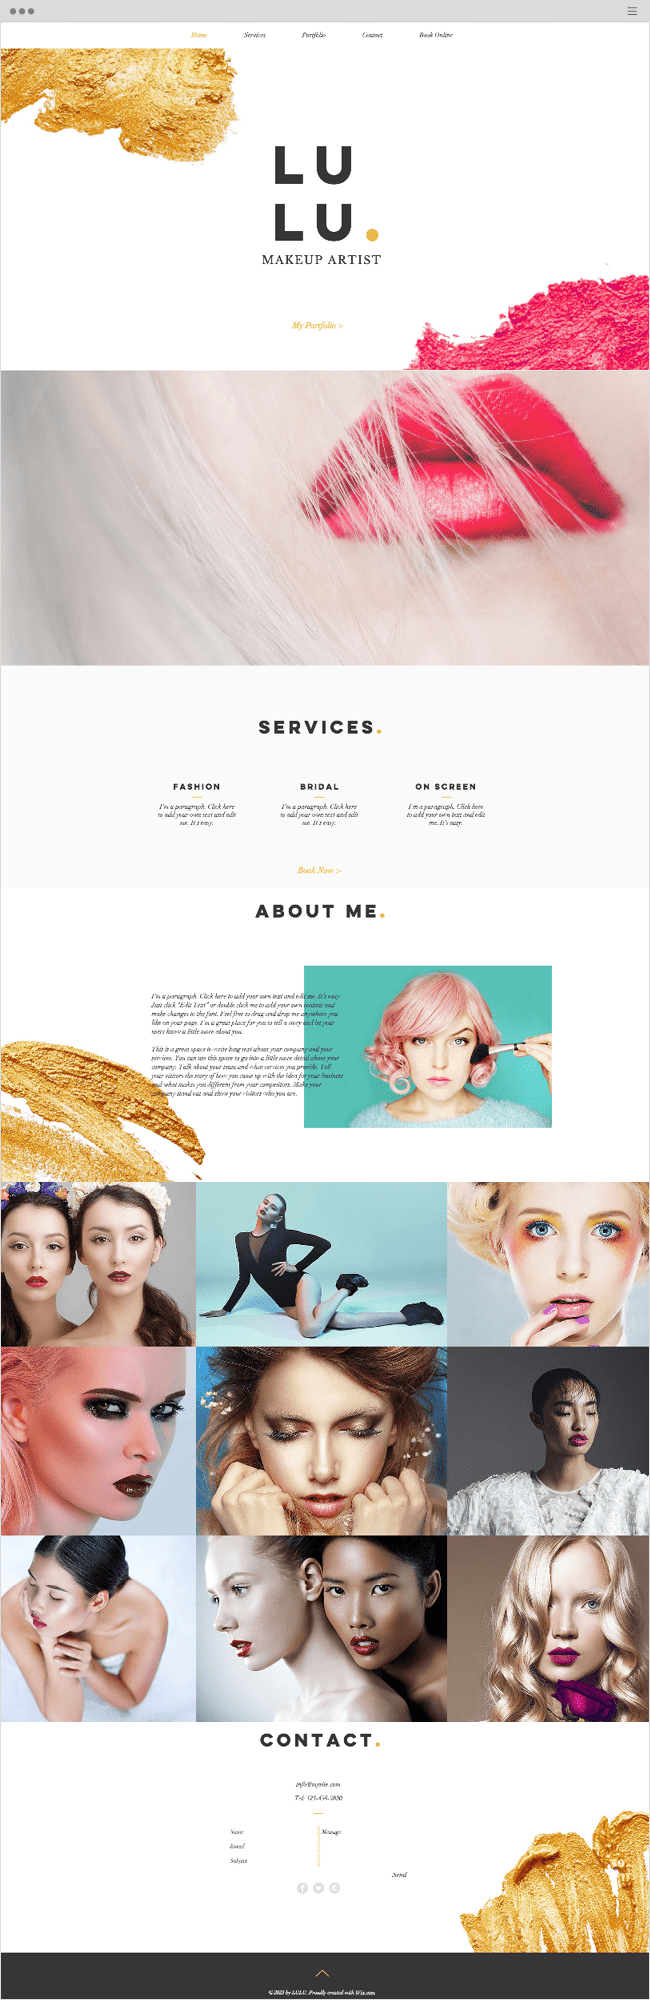 Professional Makeup Wix Website Template